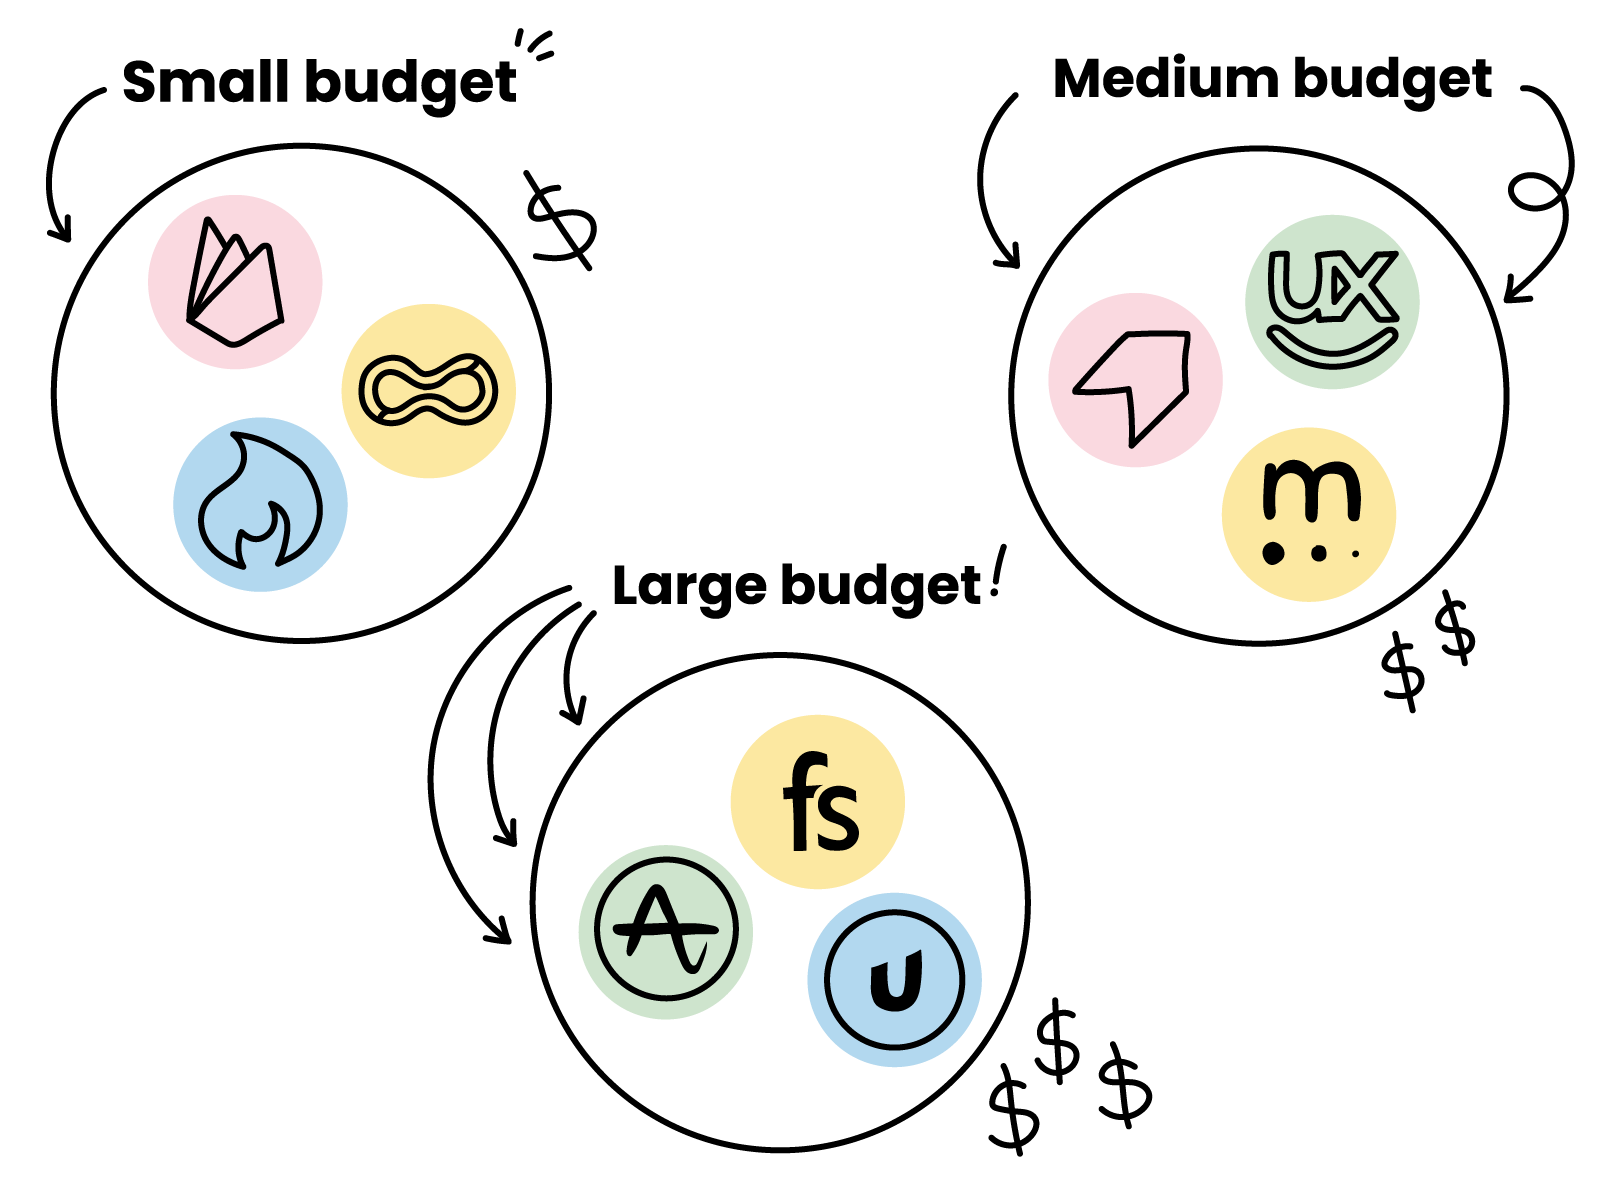 An illustration showing the various analytics tools discussed in this blog, including smartlook, pendo & fullstory, segmented into buget tiers for small, medium and large budgets.